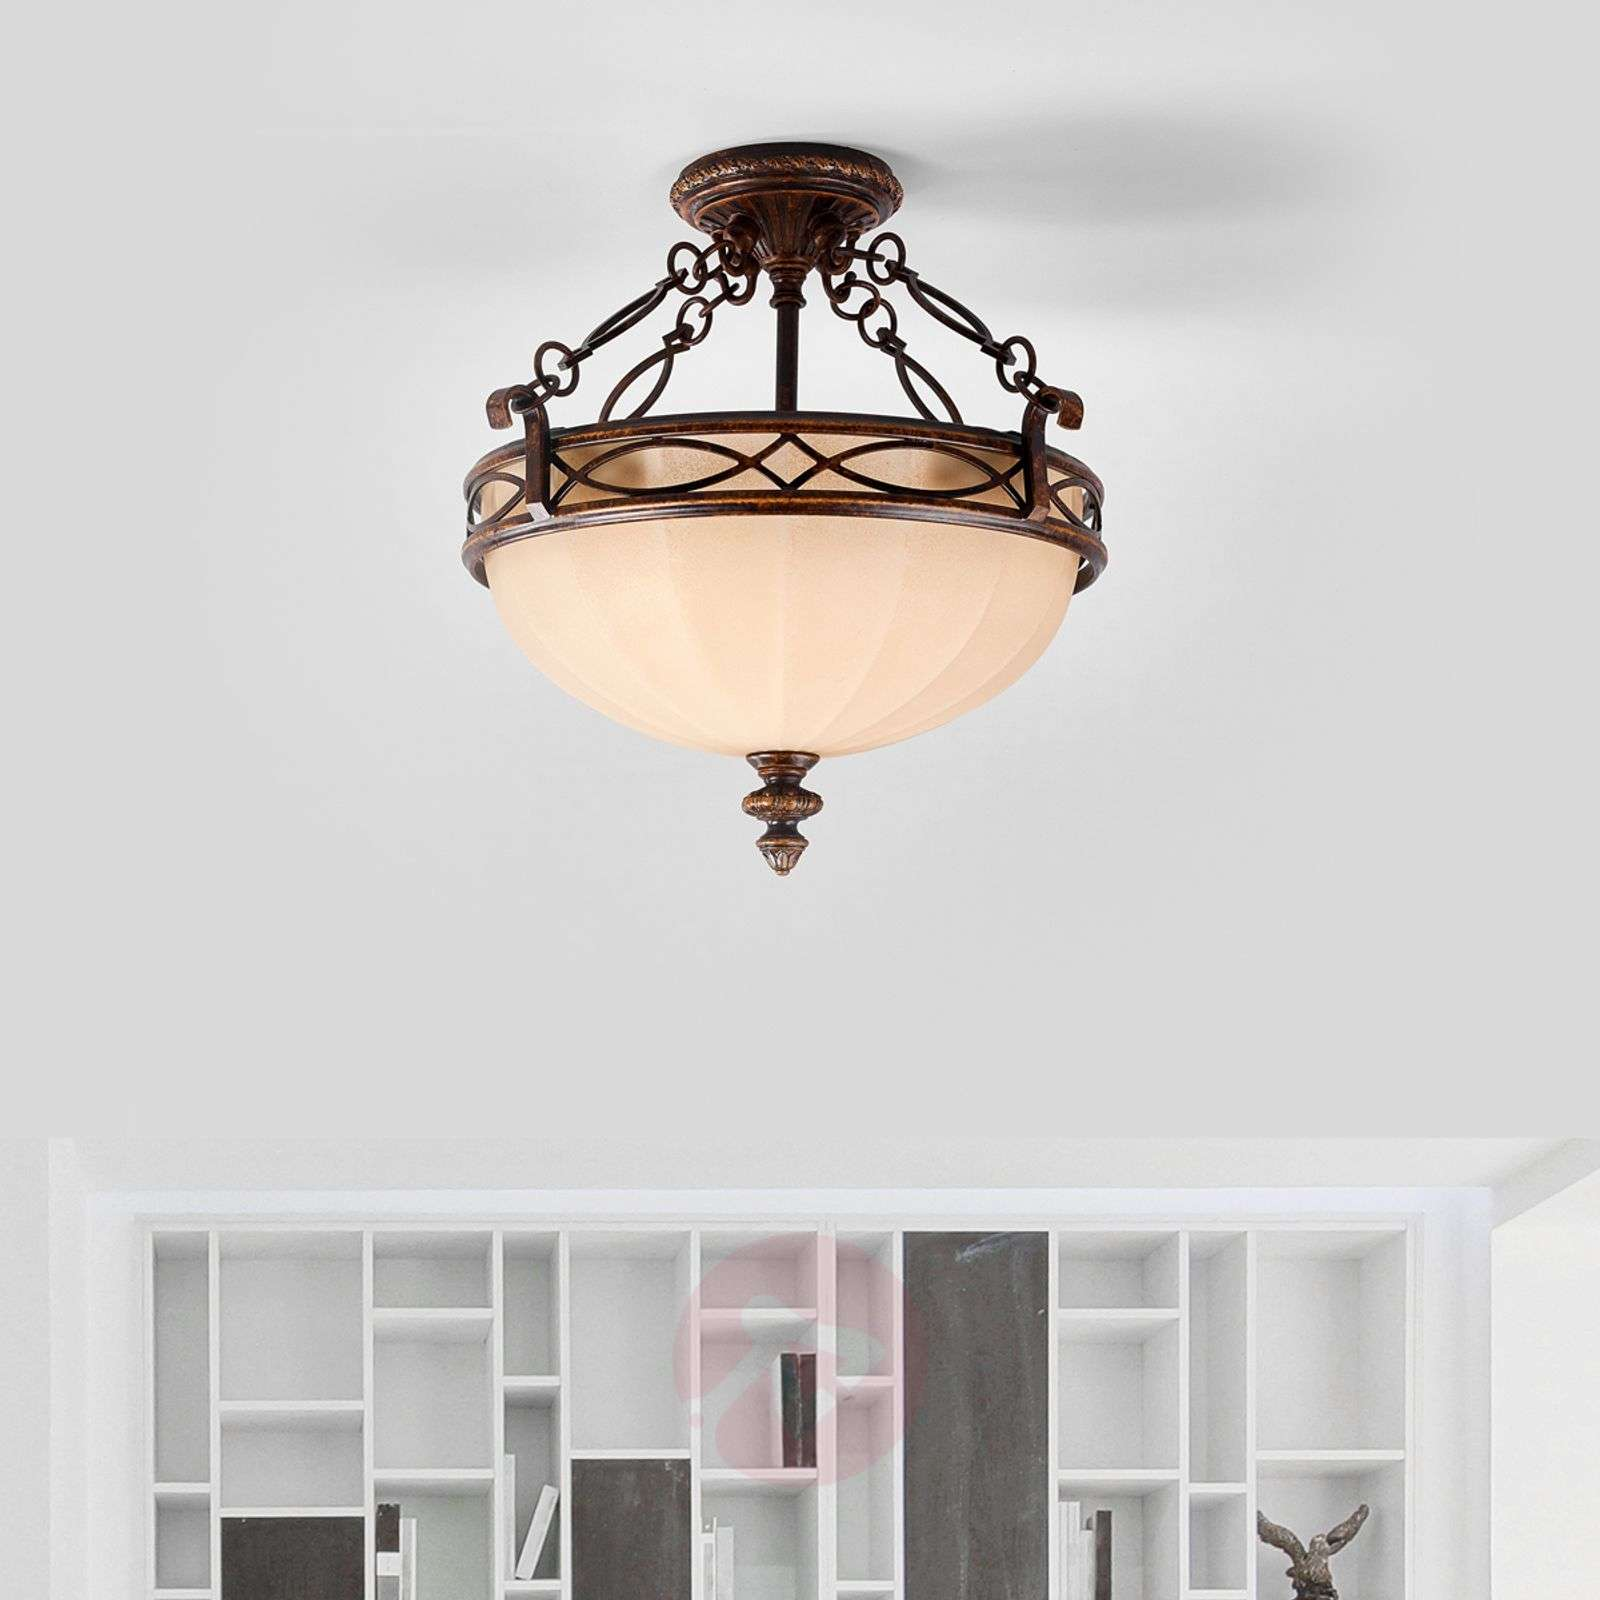 Drawing Room Ceiling Light Classic-3048238-02